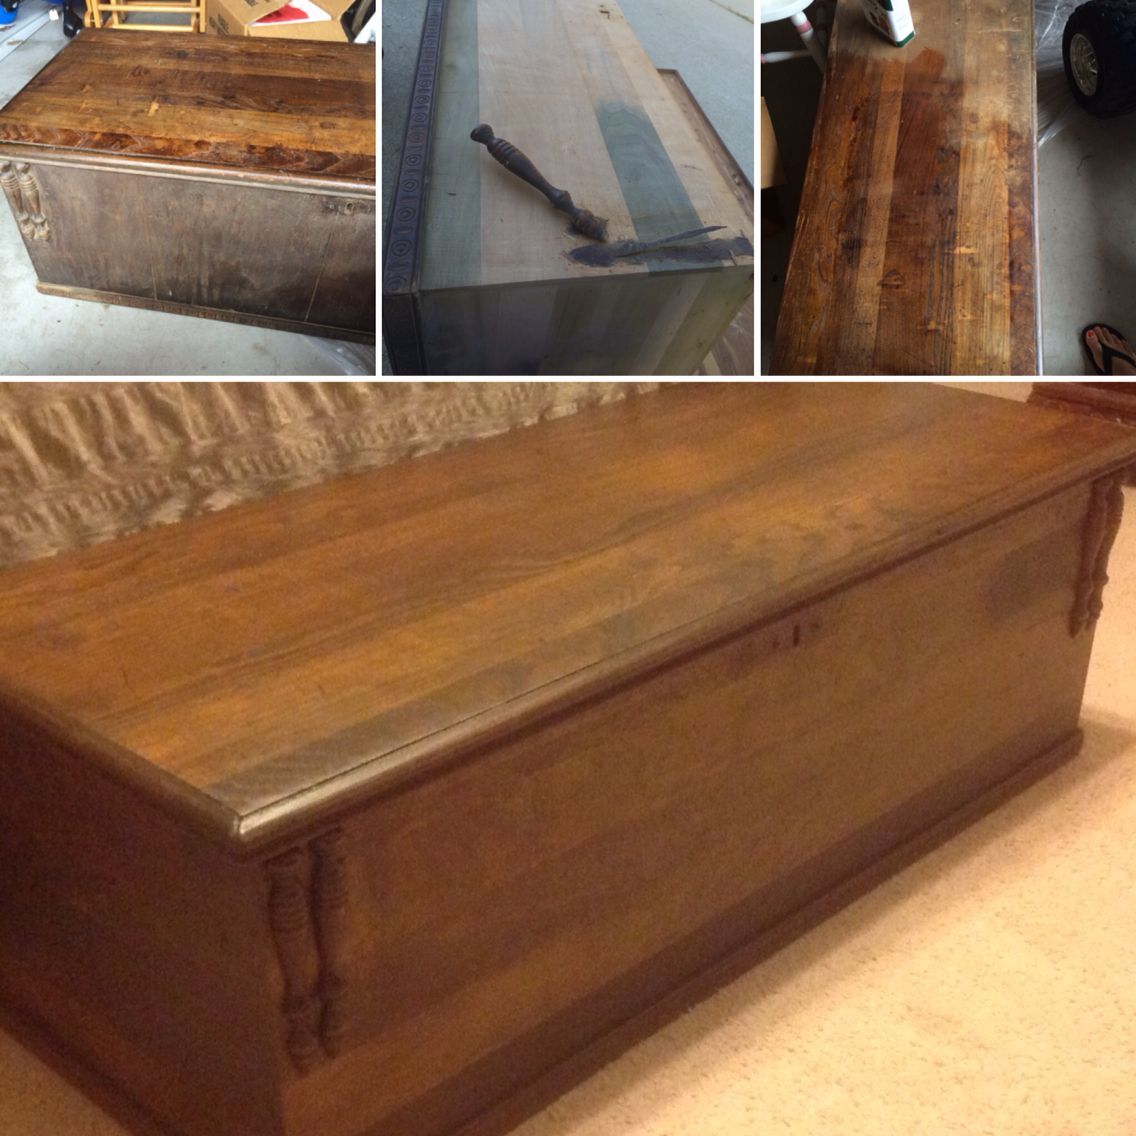 Antique Knickerbocker Cedar Chest Refinished. Stripped The Veneer, Sanded  And Stained In Dark Walnut